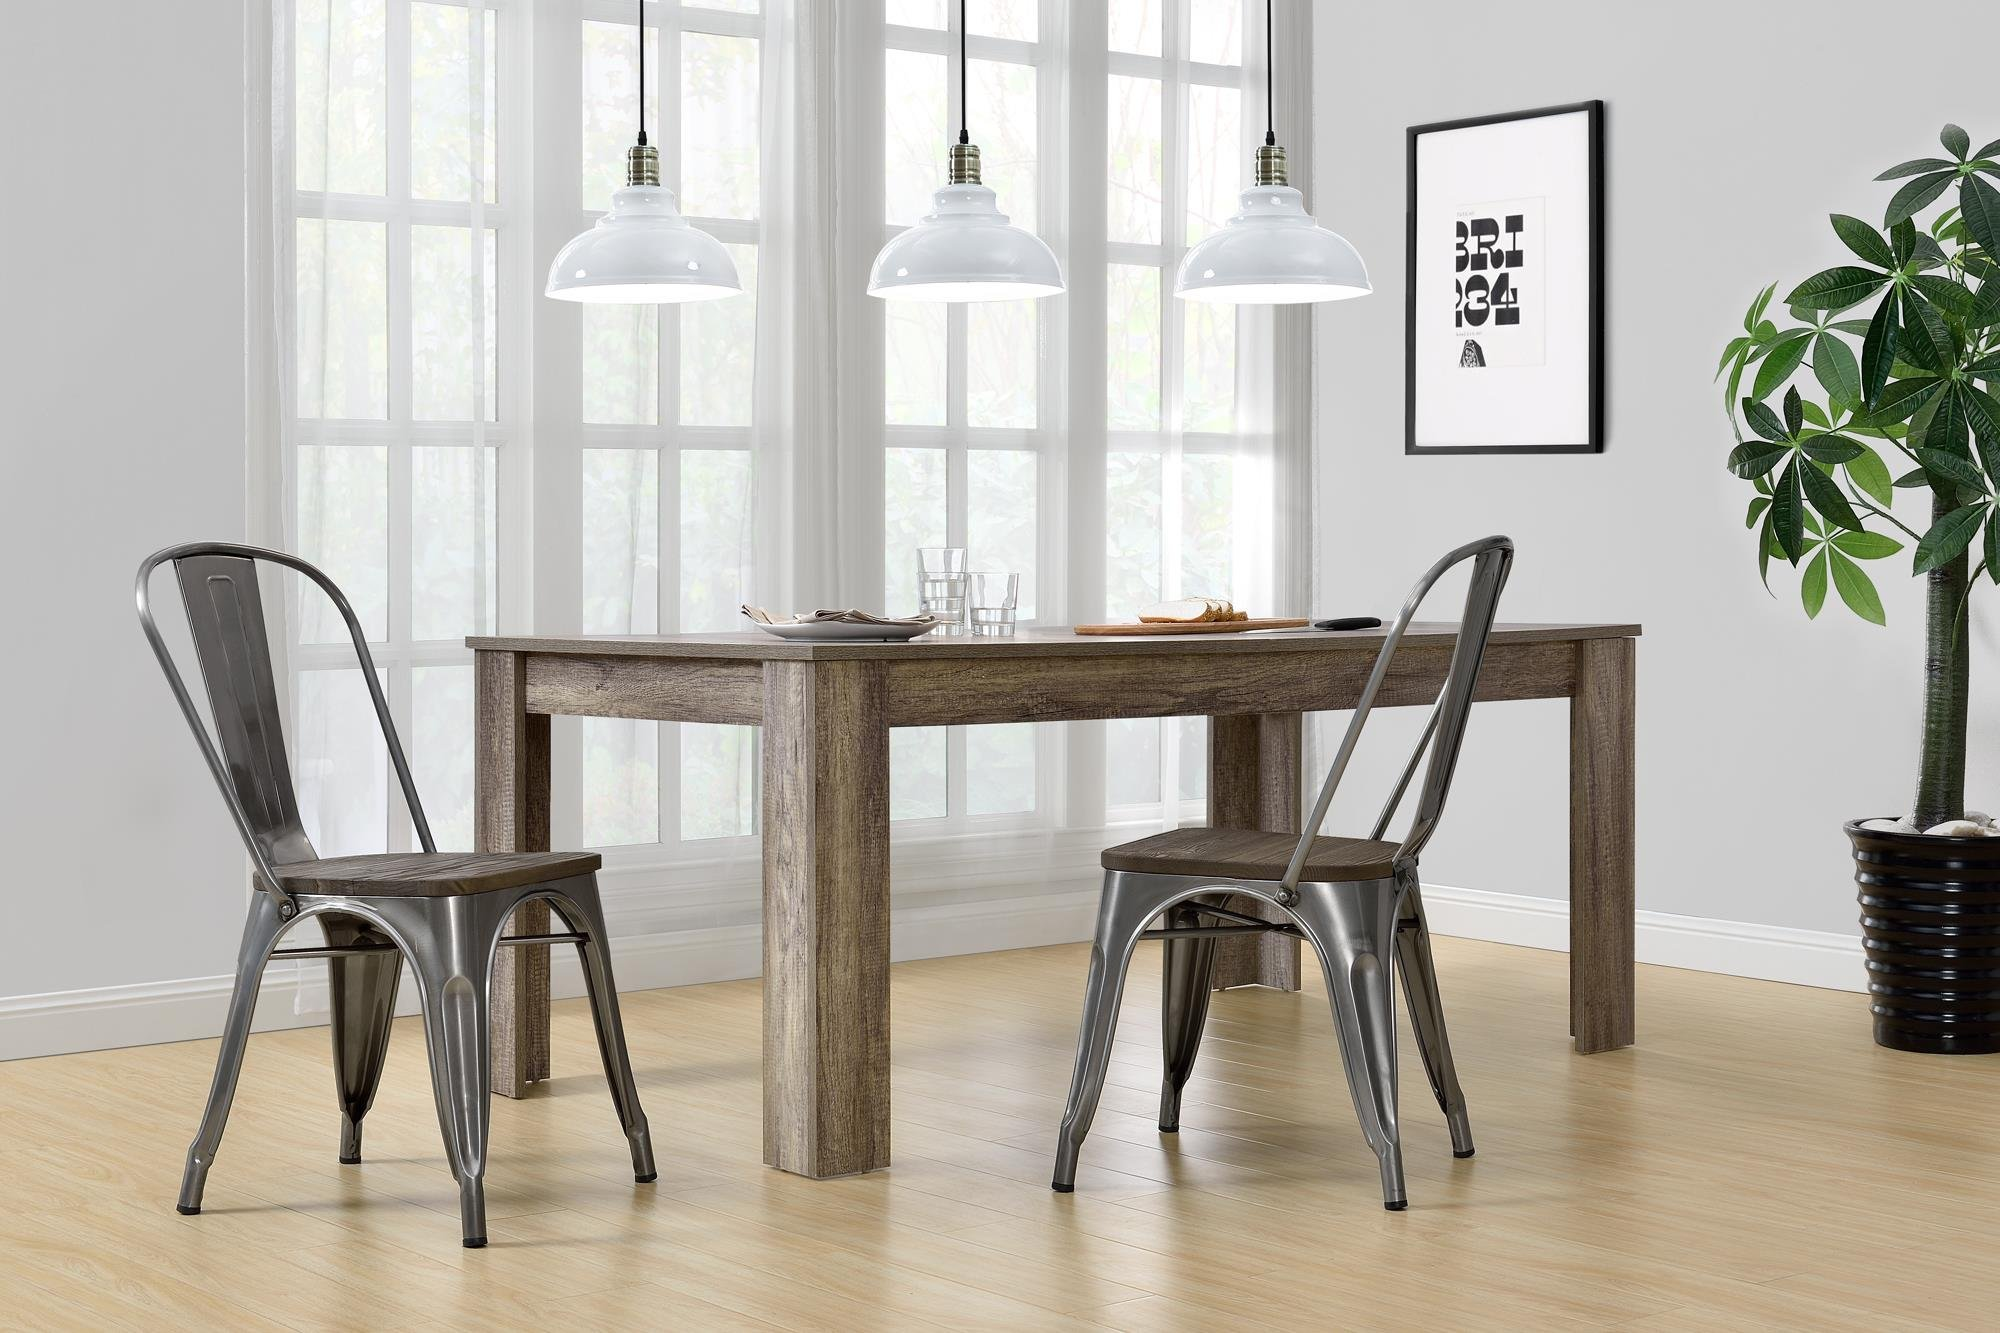 DHP Fusion Metal Dining Chair with Wood Seat, Set of two, Antique Gunmetal by DHP (Image #4)